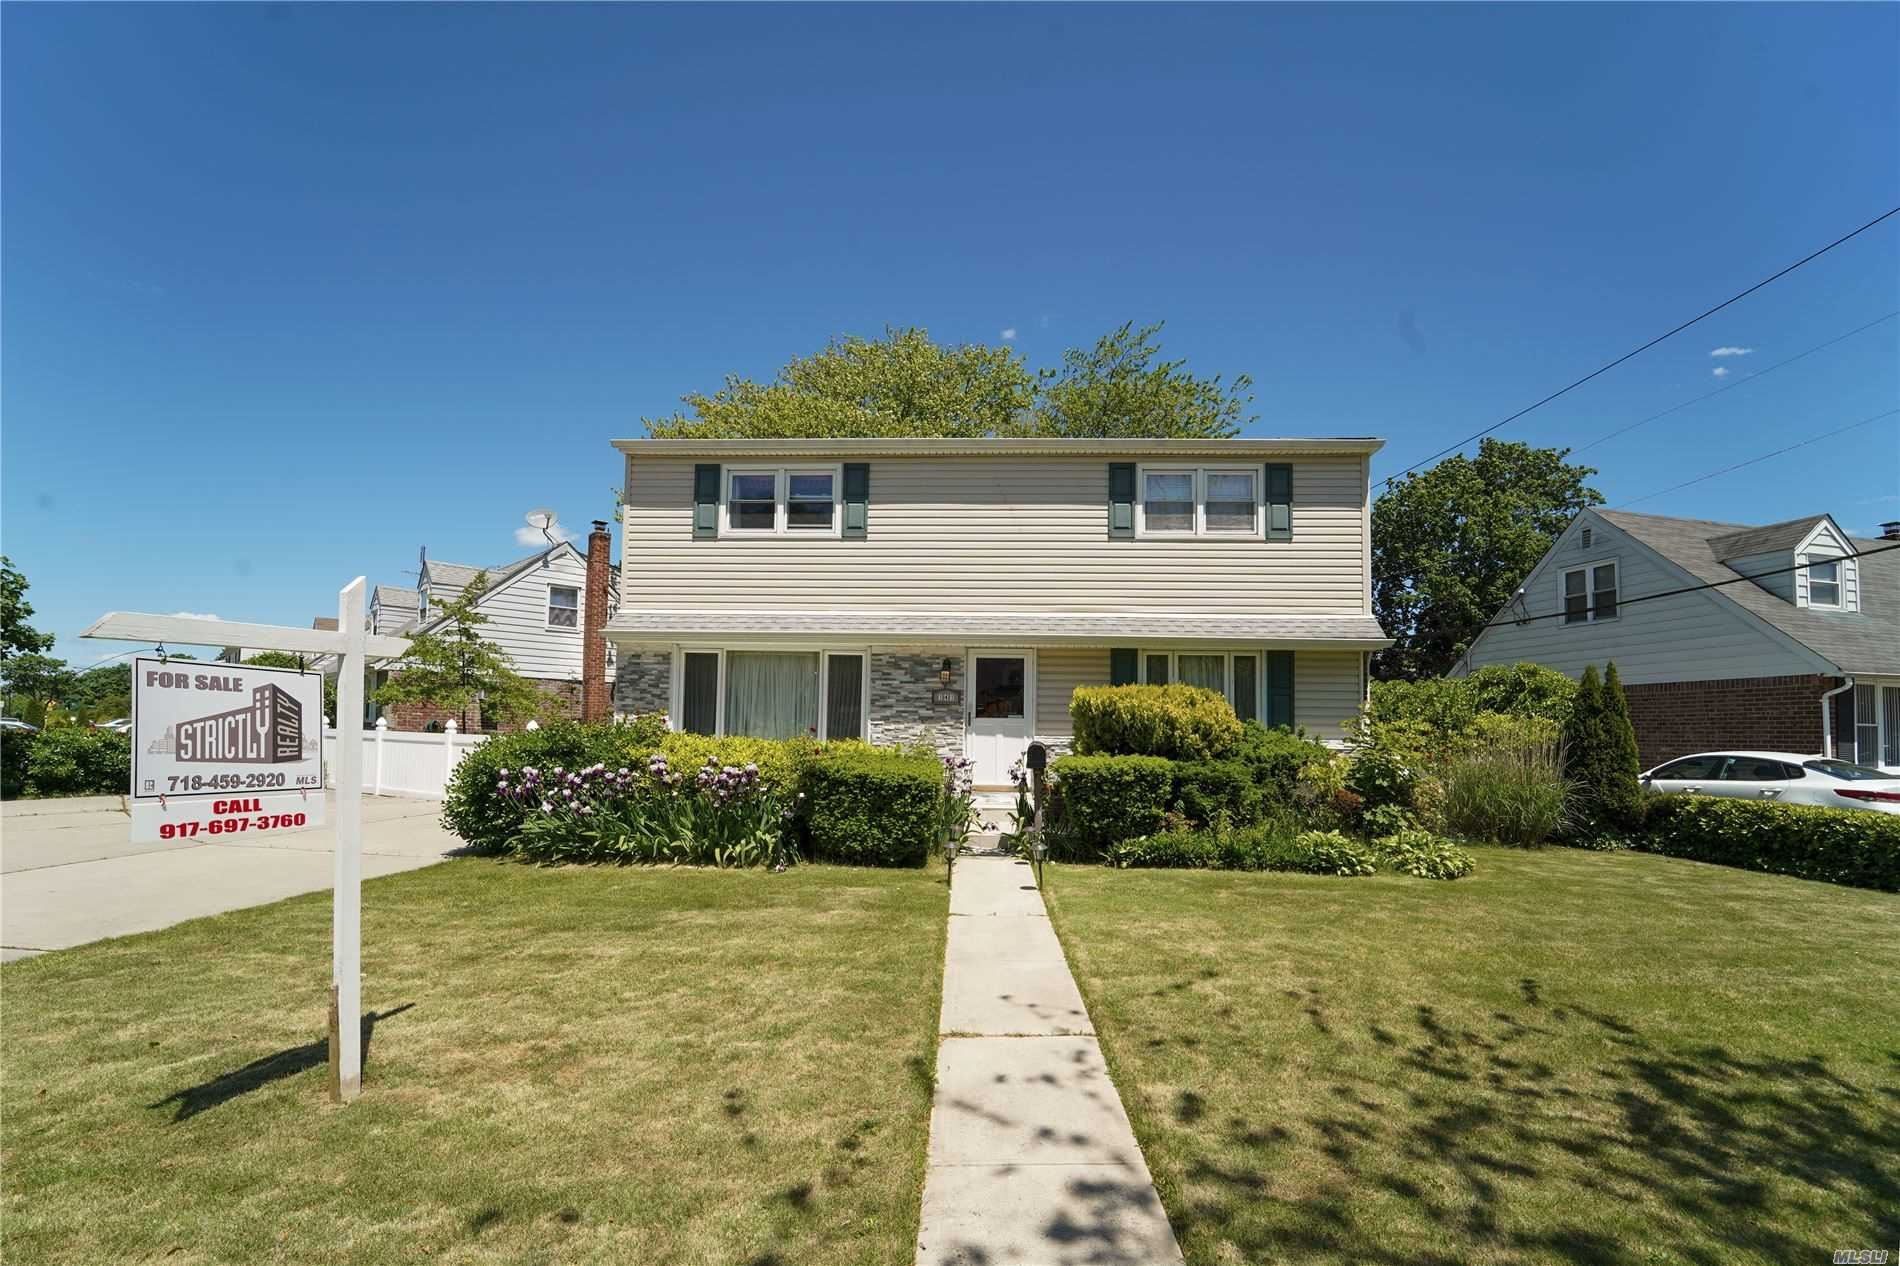 141 Bellmore Road, East Meadow, NY 11554 - MLS#: 3207626